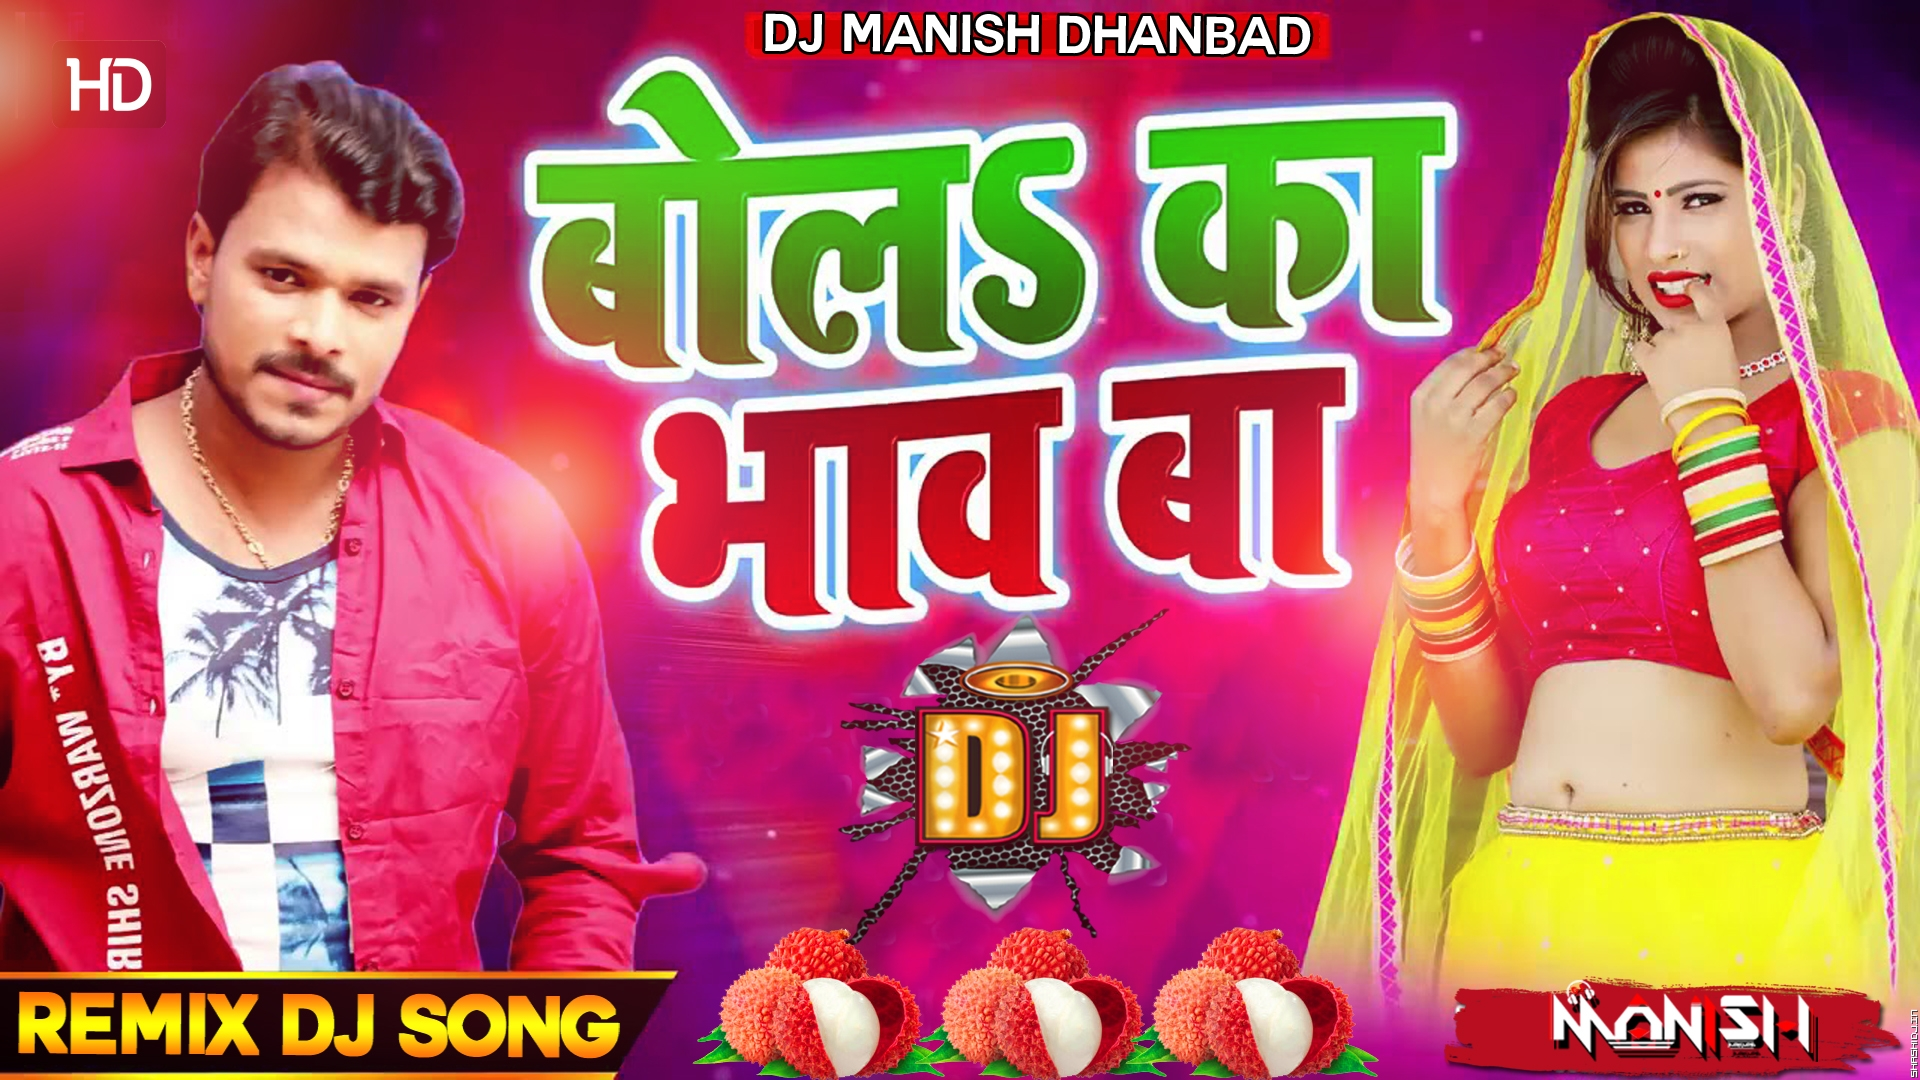 Bola Ka Bhaw Ba Tahara Lichi Ke Ho - Full To Pagal Dance Mix By Dj Manish Dhanbad.mp3